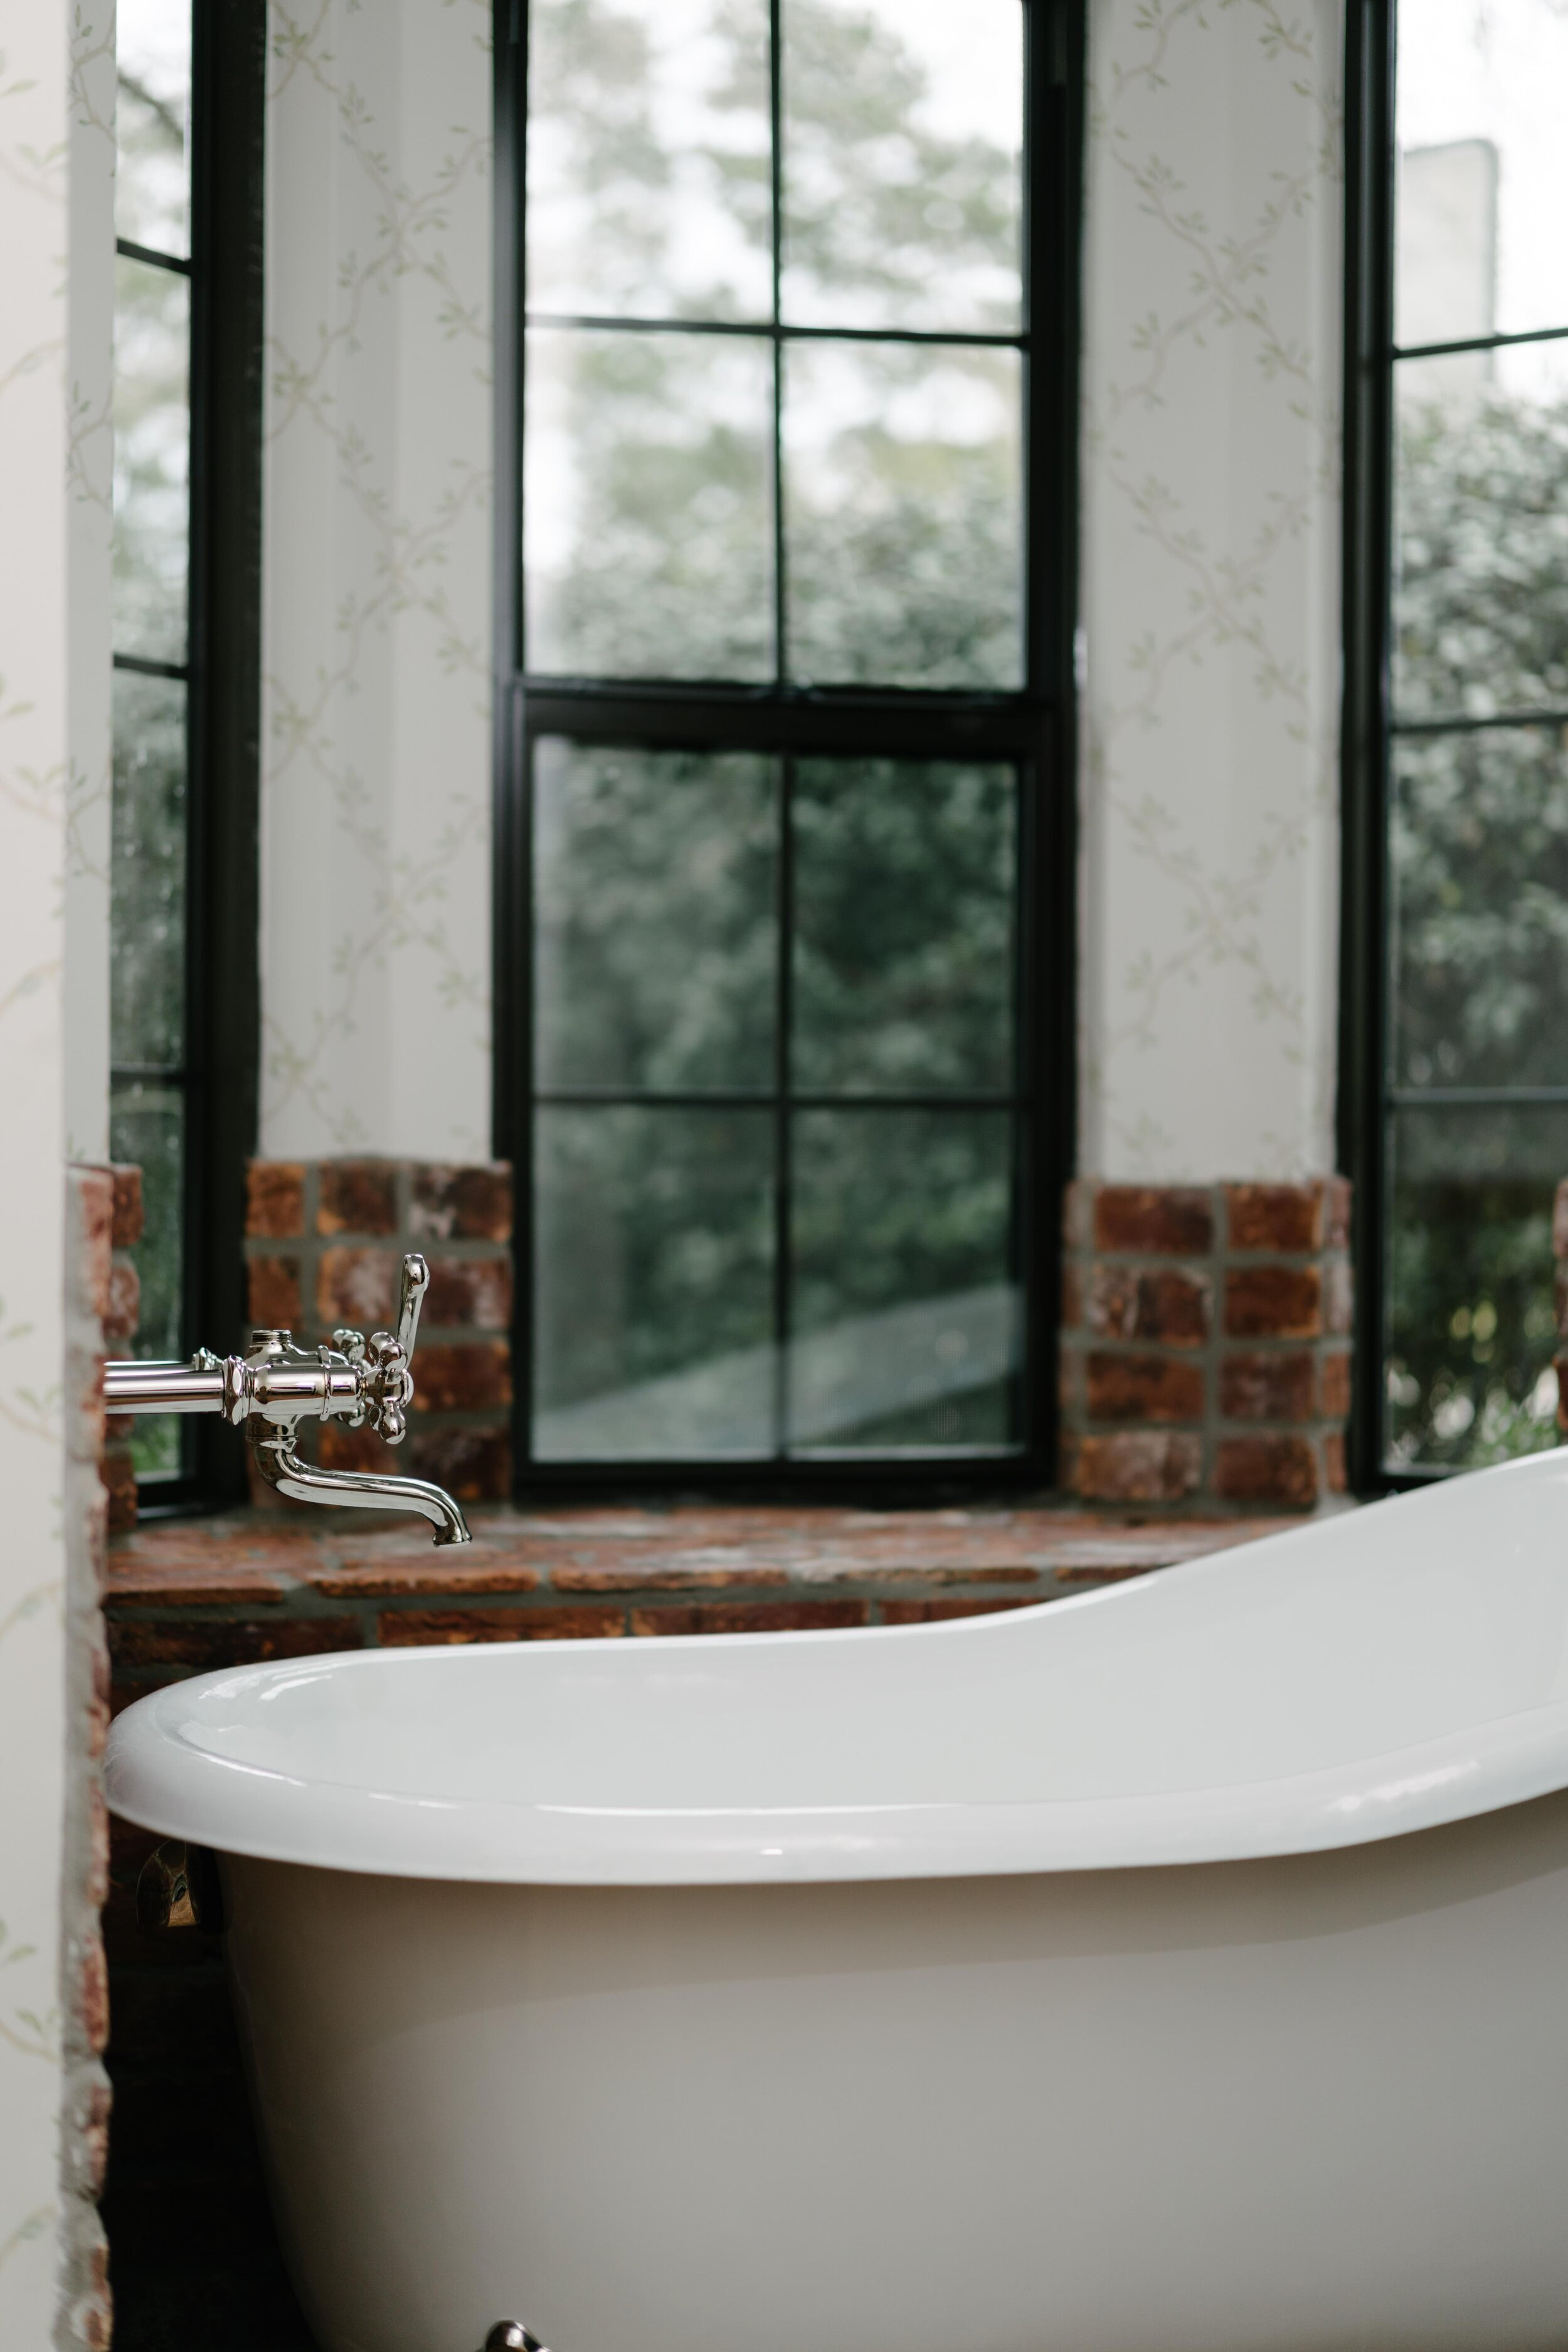 Stunning master bathroom renovation. Featuring free standing bathtub, clawfoot bathtub with wall mount stainless steel faucet. Farmhouse master bathroom renovation.